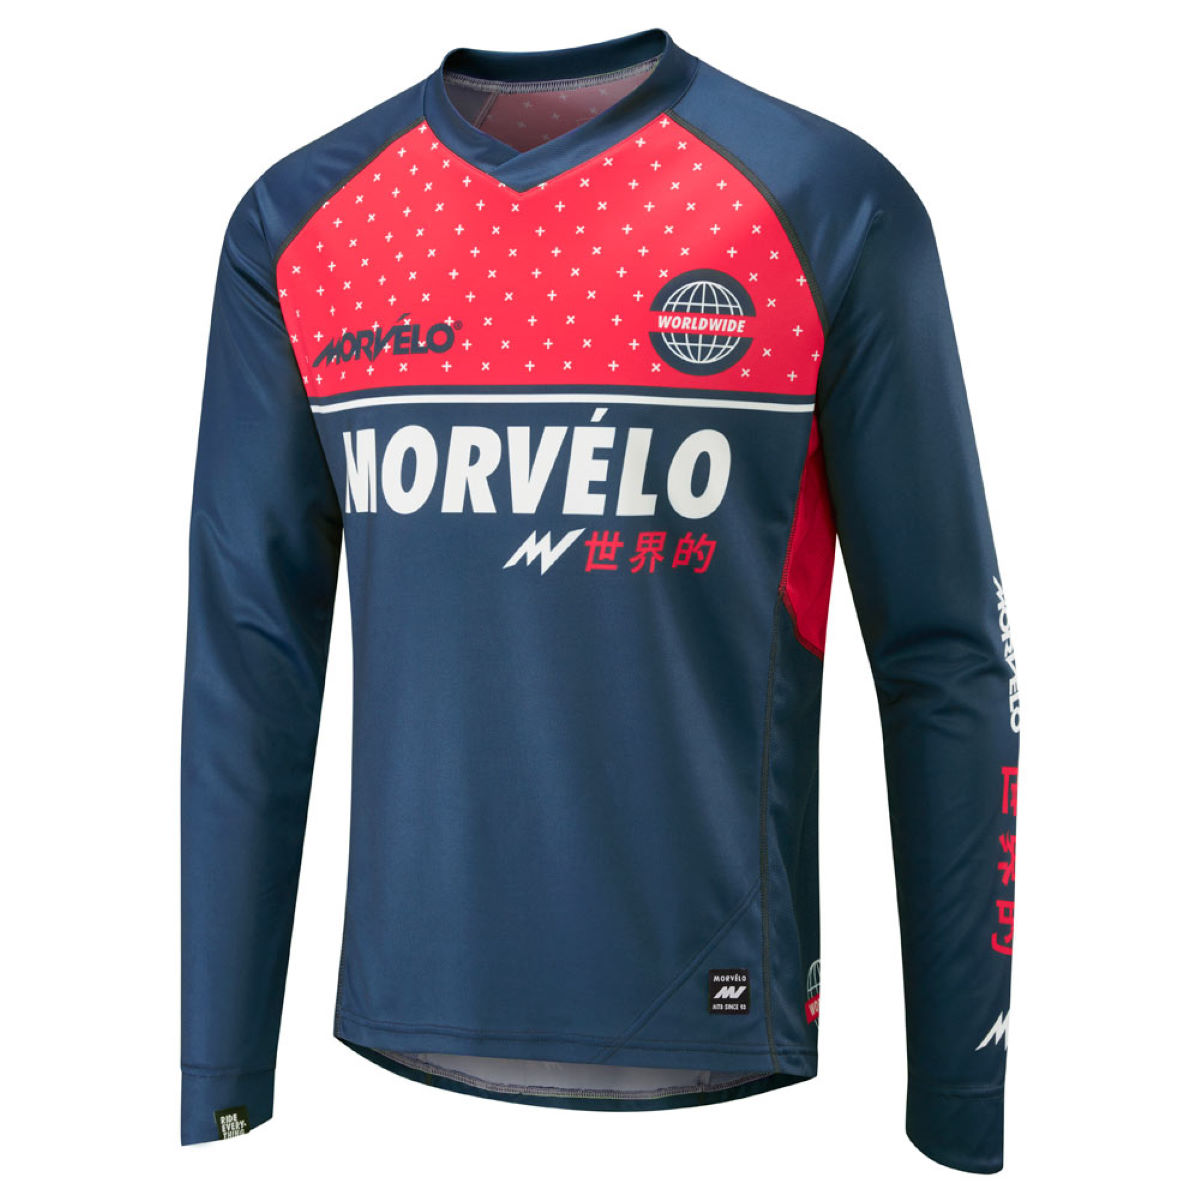 Maillot VTT Morvelo Worldwide (manches longues) - XL Worldwide